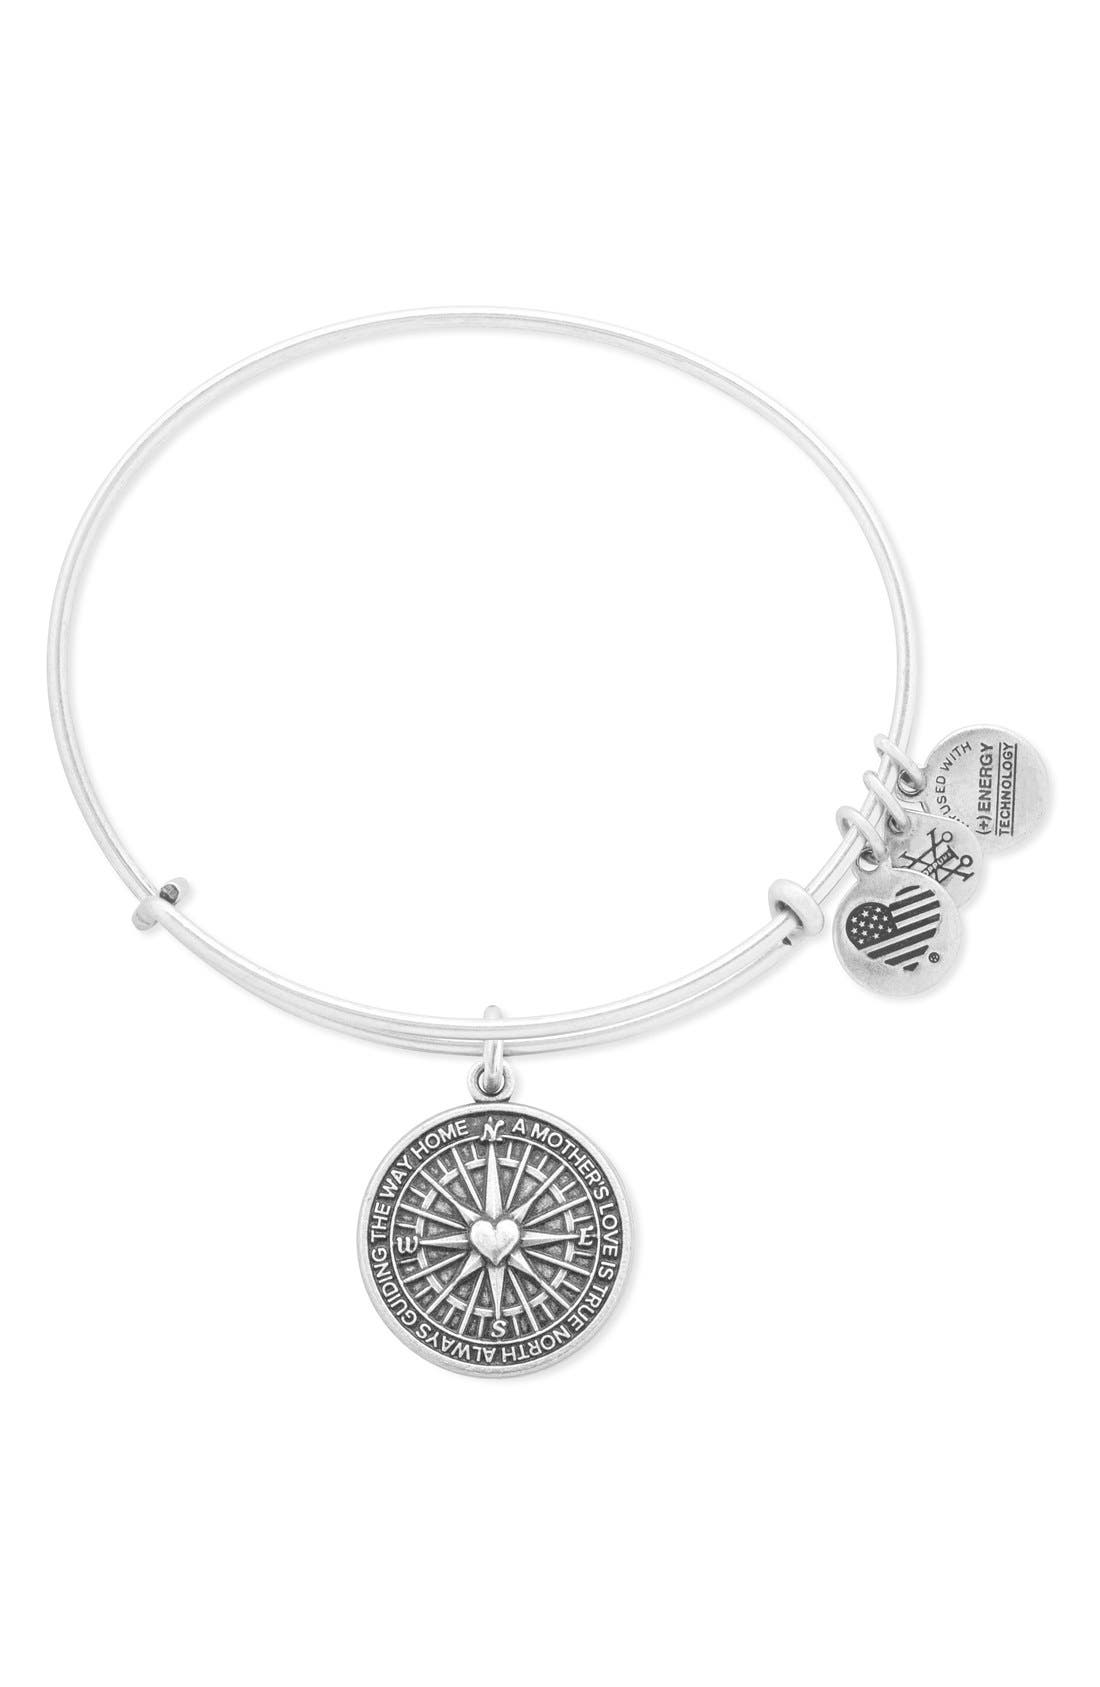 ALEX AND ANI 'True Direction' Adjustable Wire Bangle, Main, color, RAFAELIAN SILVER